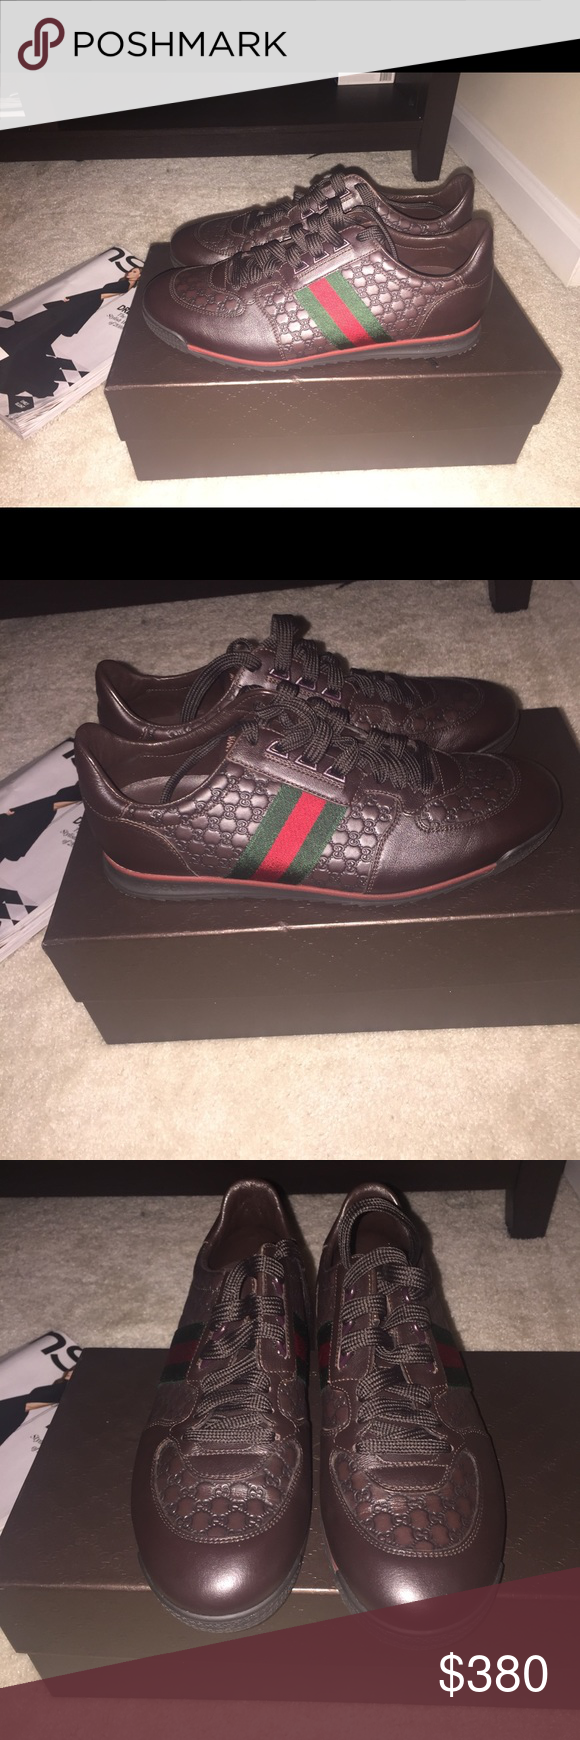 Mens Gucci Sneakers Pre-loved mens gucci sneaker great condition wore only  once!! Gucci Shoes Sneakers 133a51c1abc